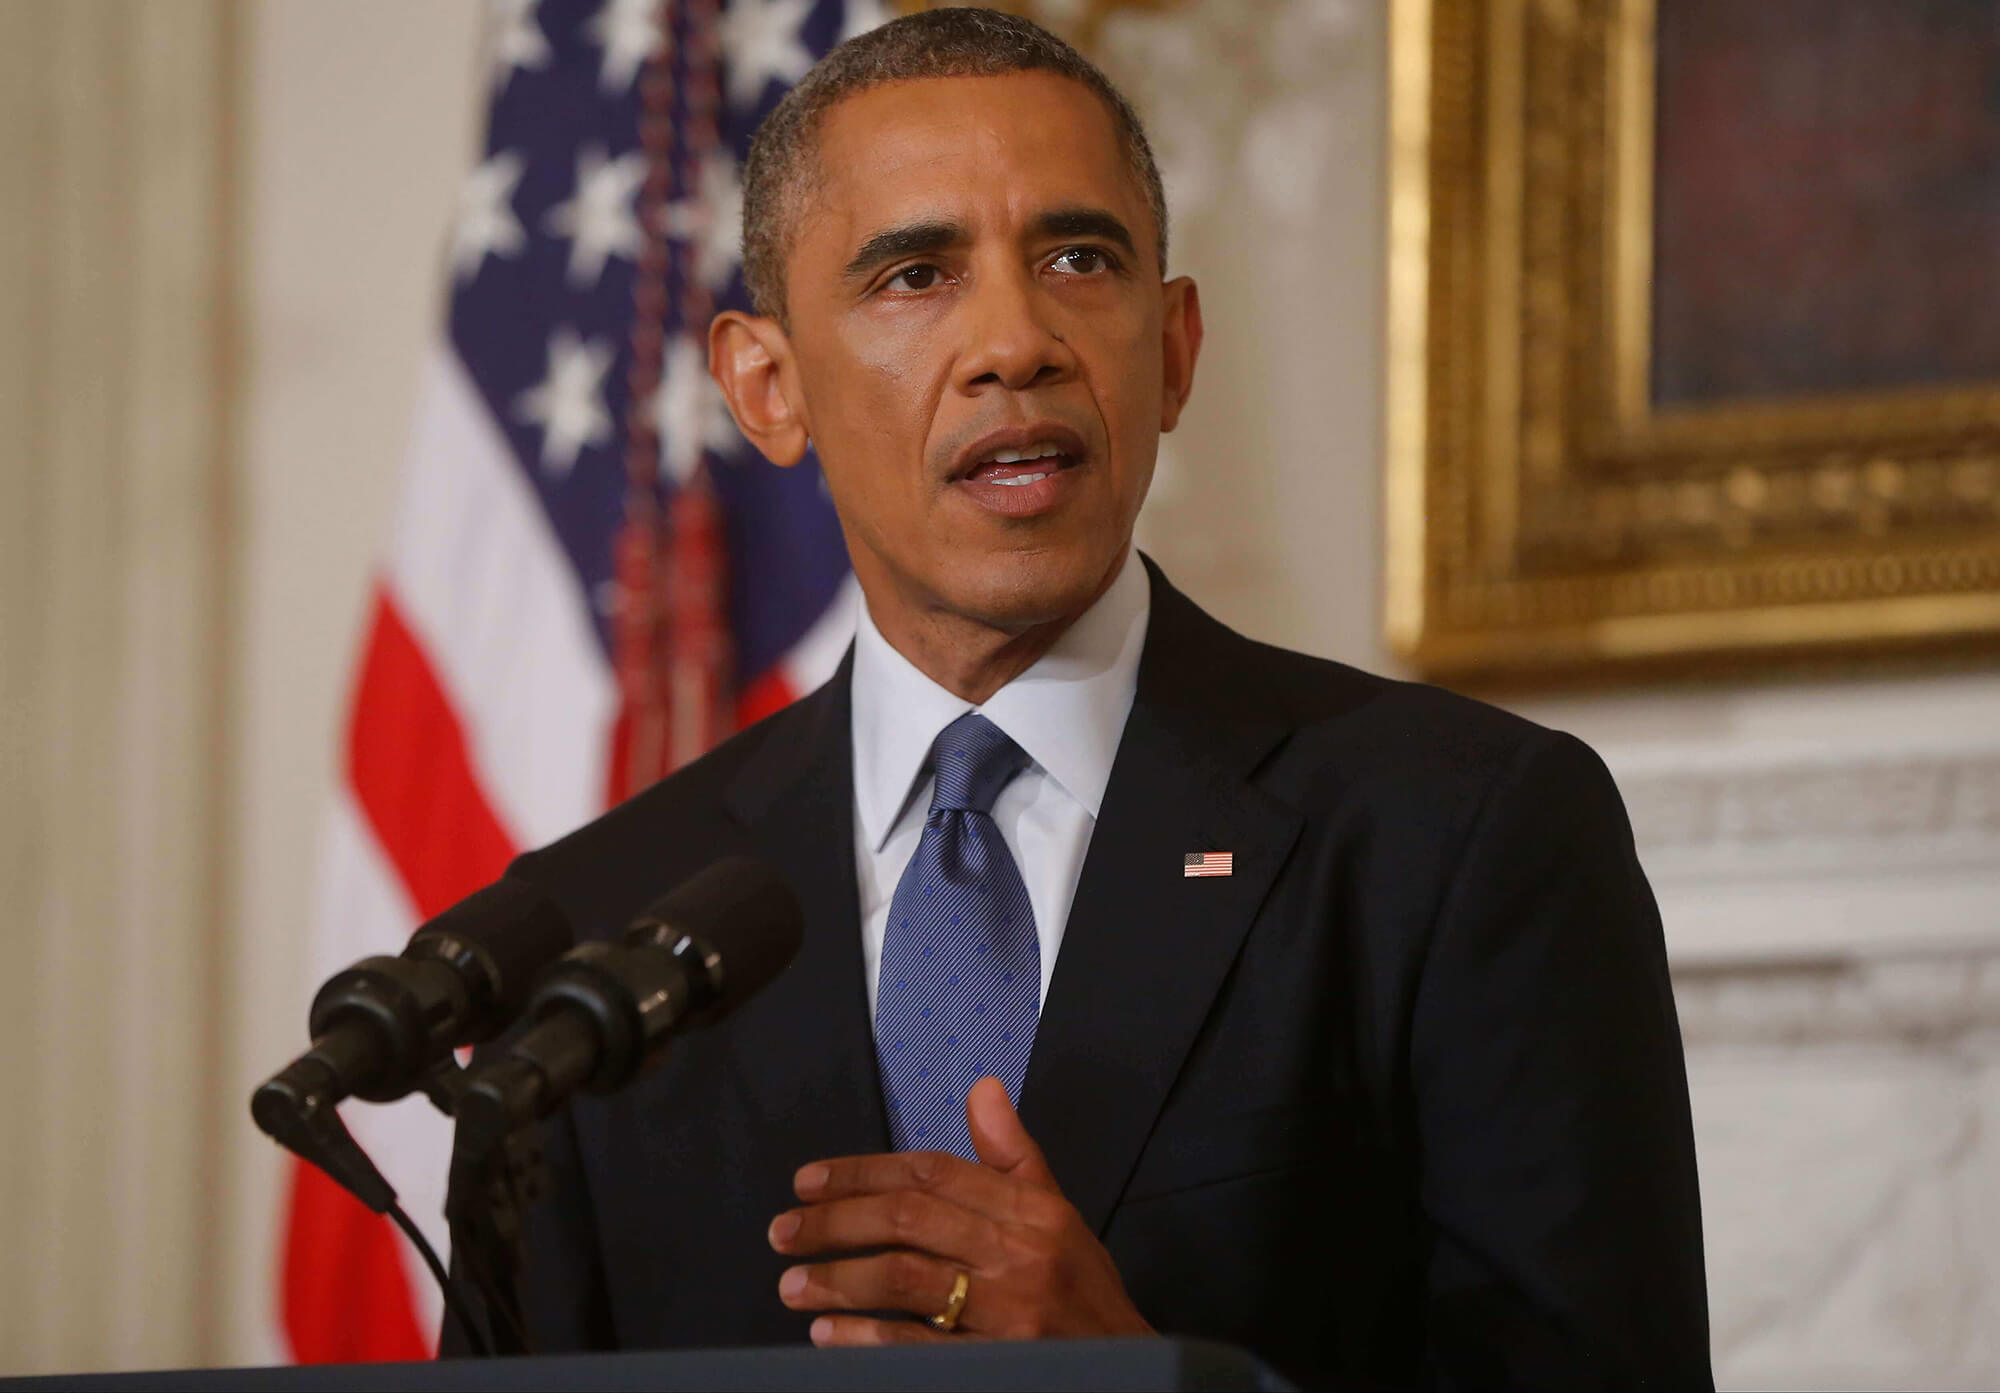 President Barack Obama discusses foreign policy